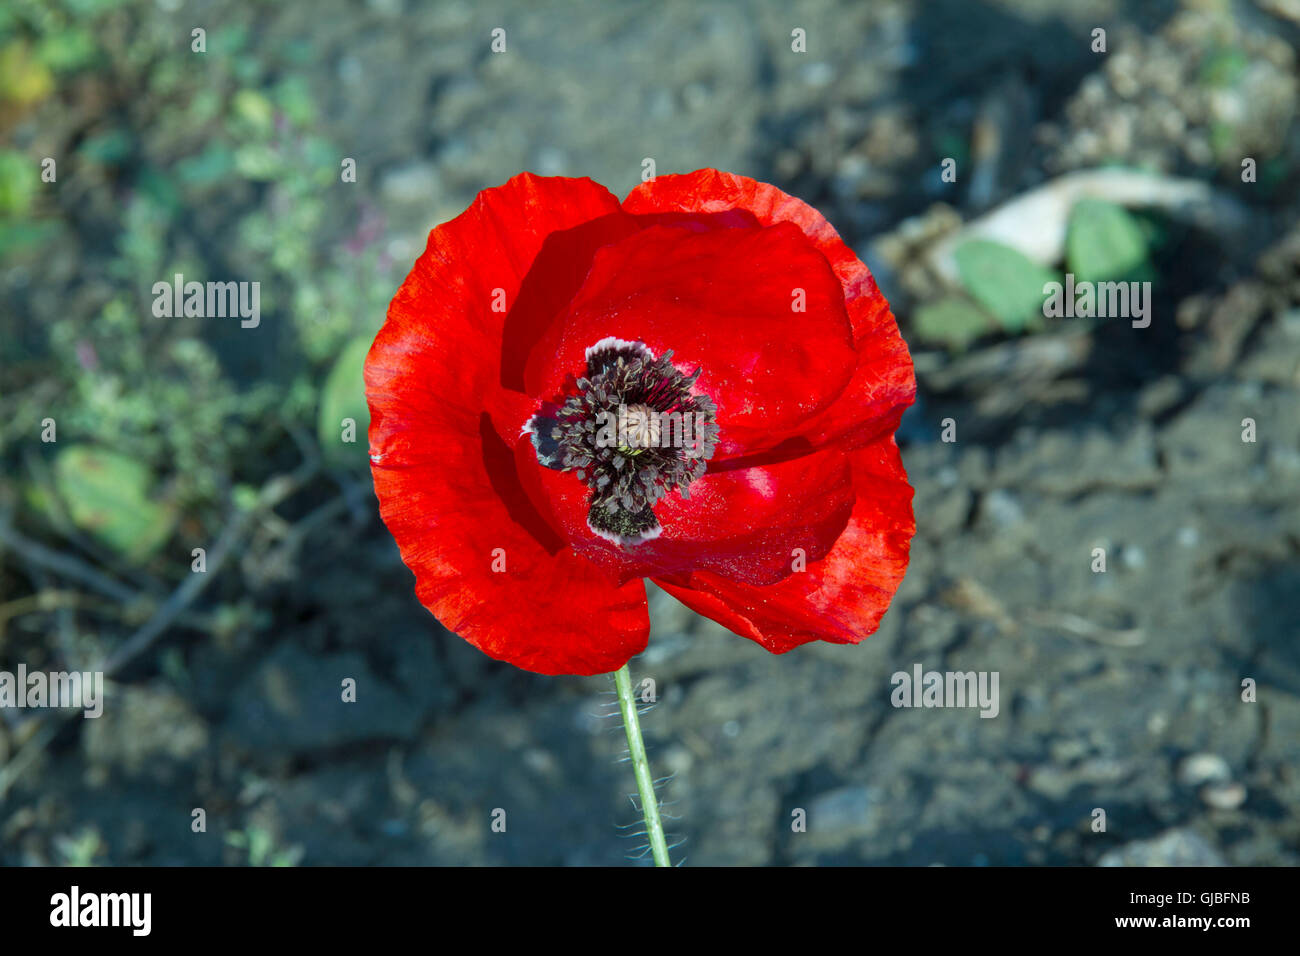 A single red poppy - Stock Image